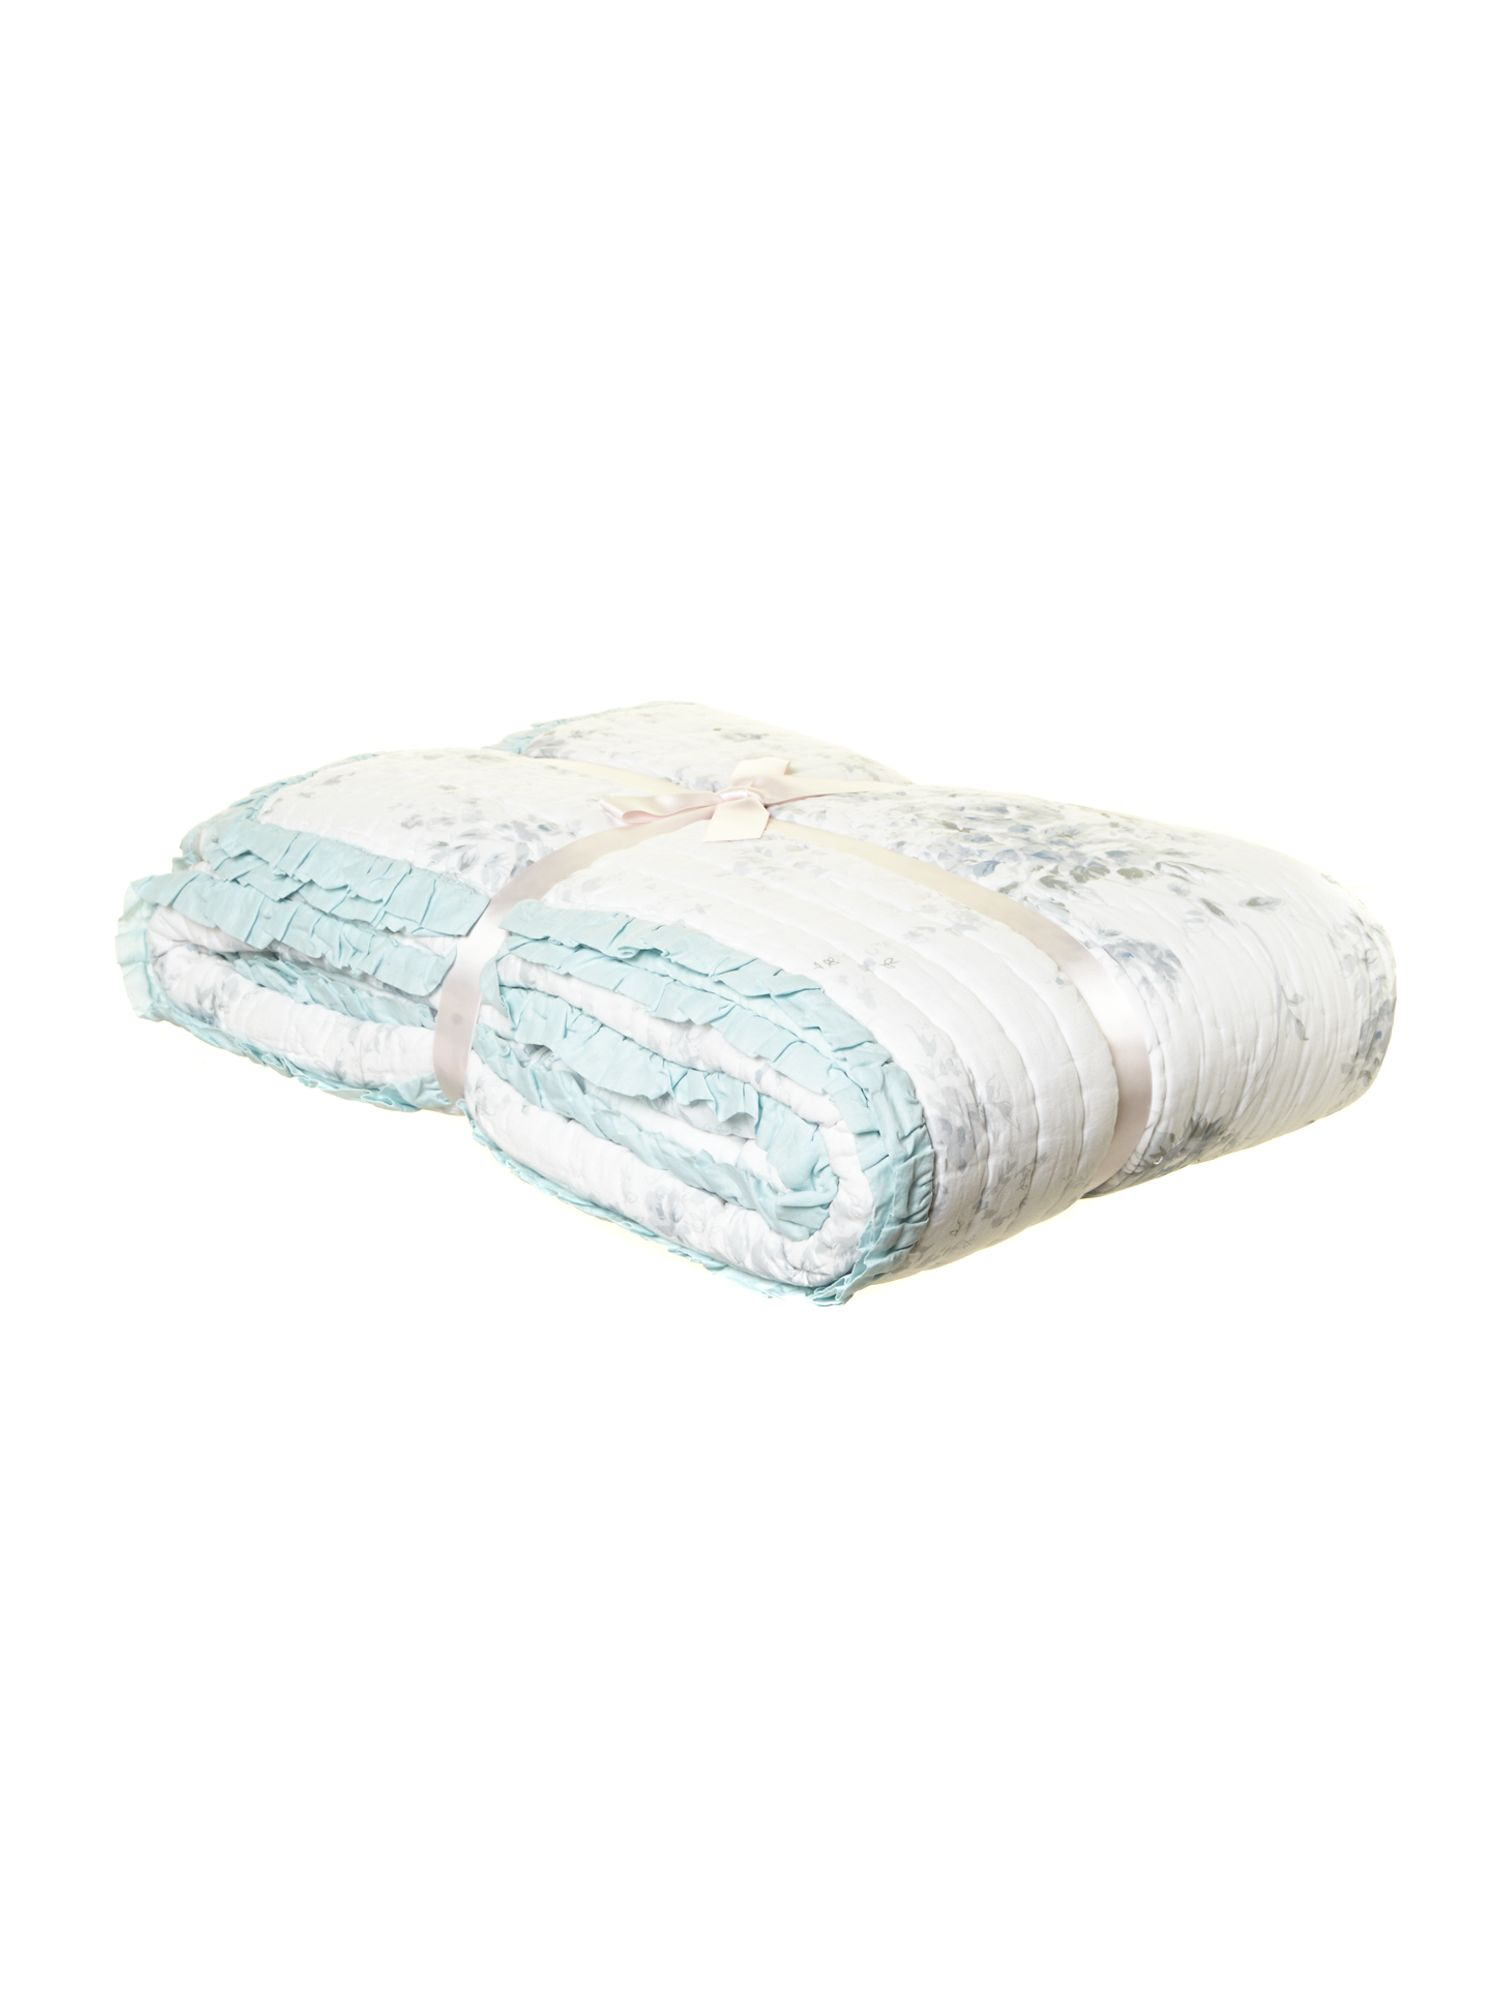 Blue rose quilted bedspread